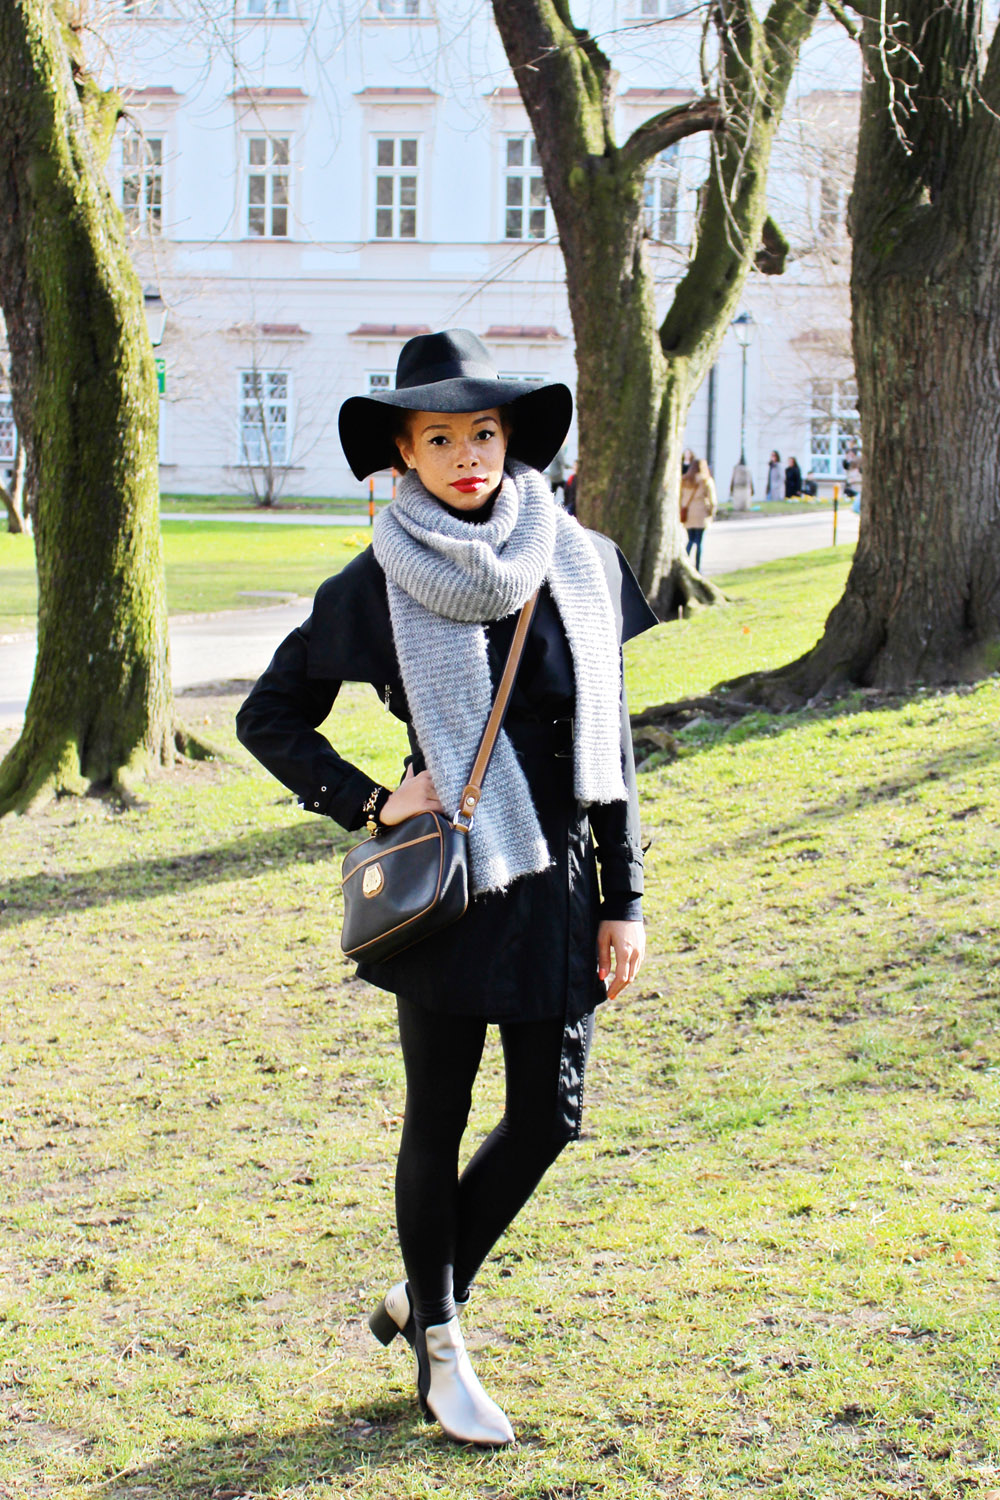 fatimayarie-salzburg-black-hat-lancel-bag-chelseaboots-img_1885